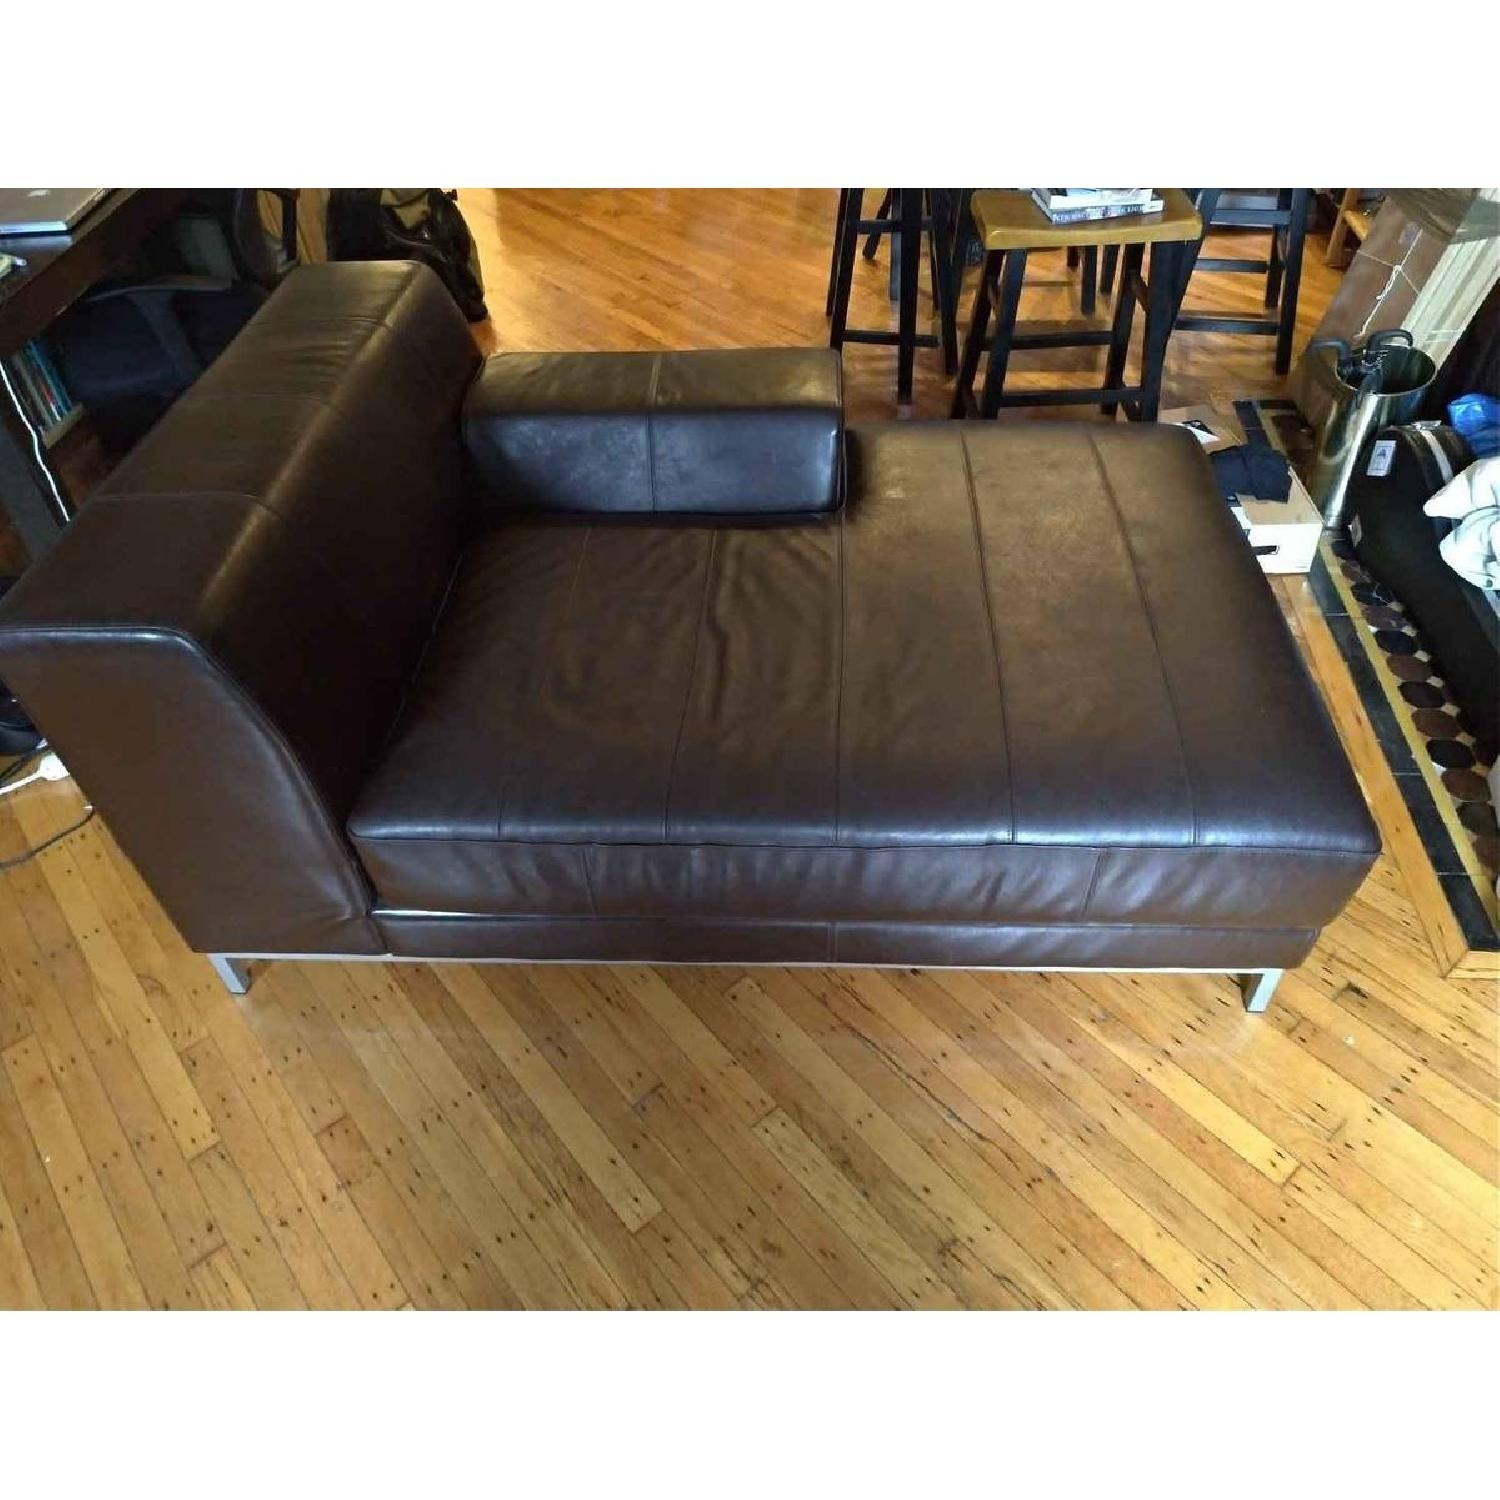 Ikea Kramfors Leather Right Chaise Lounge - image-1